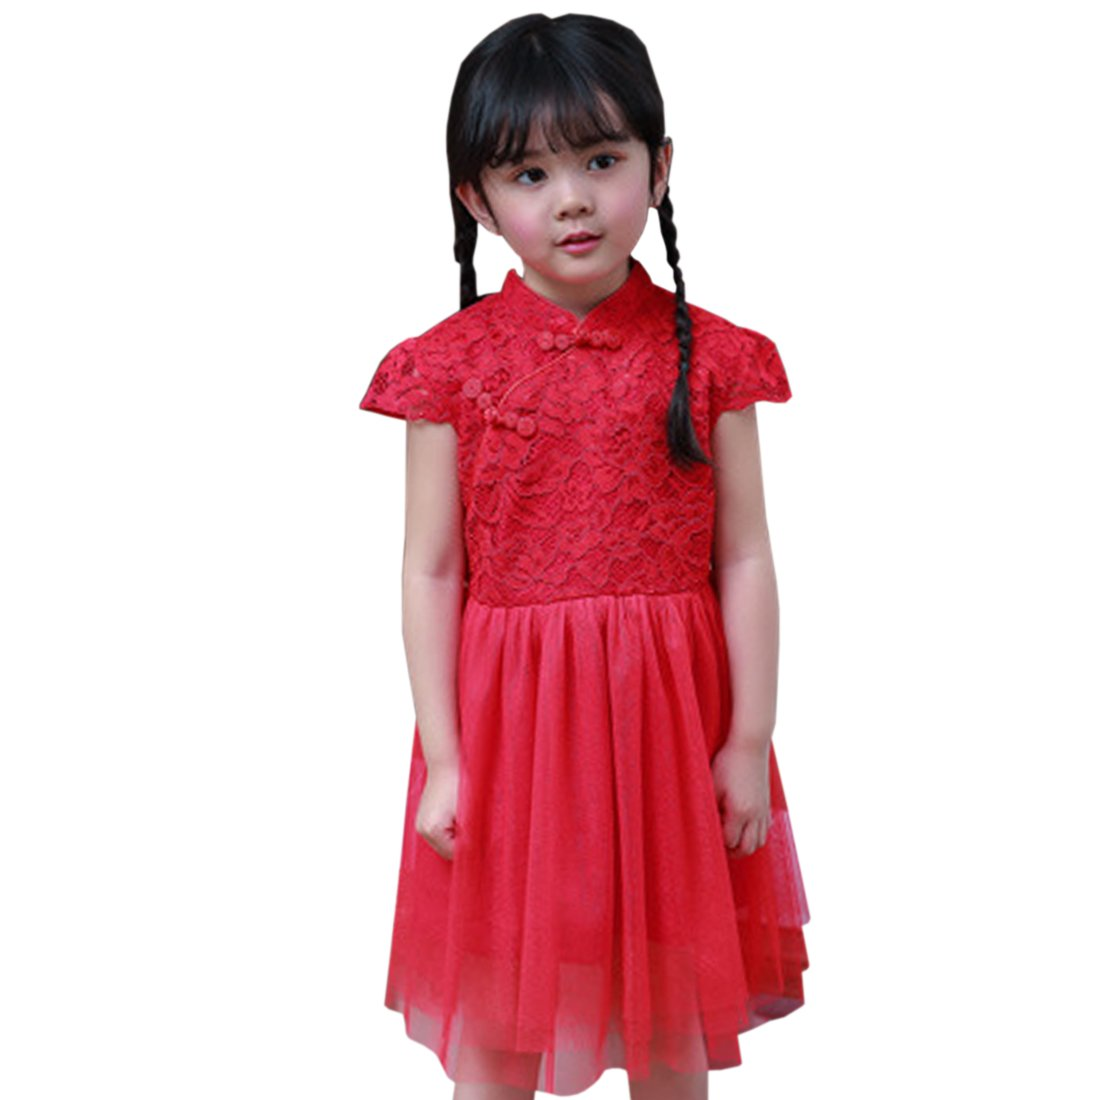 ACVIP Kids Little Girl's Lace Tulle Chinese Qipao Dress (4-5 years/Tag 120, Red)